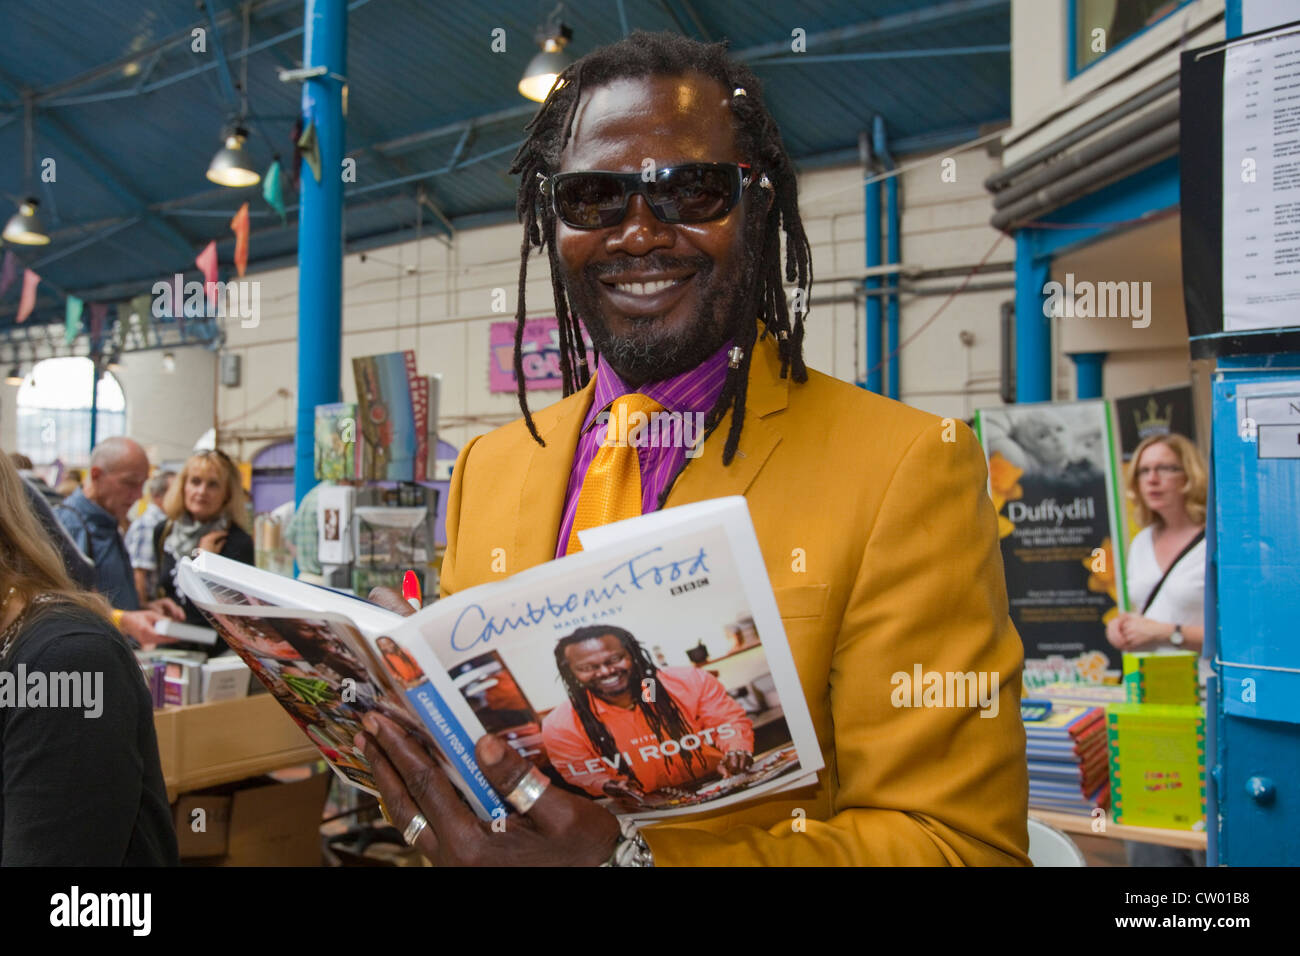 TV chef Levi Roots at Abergavenny Food festival, Monmouthshire, Wales, UK - Stock Image